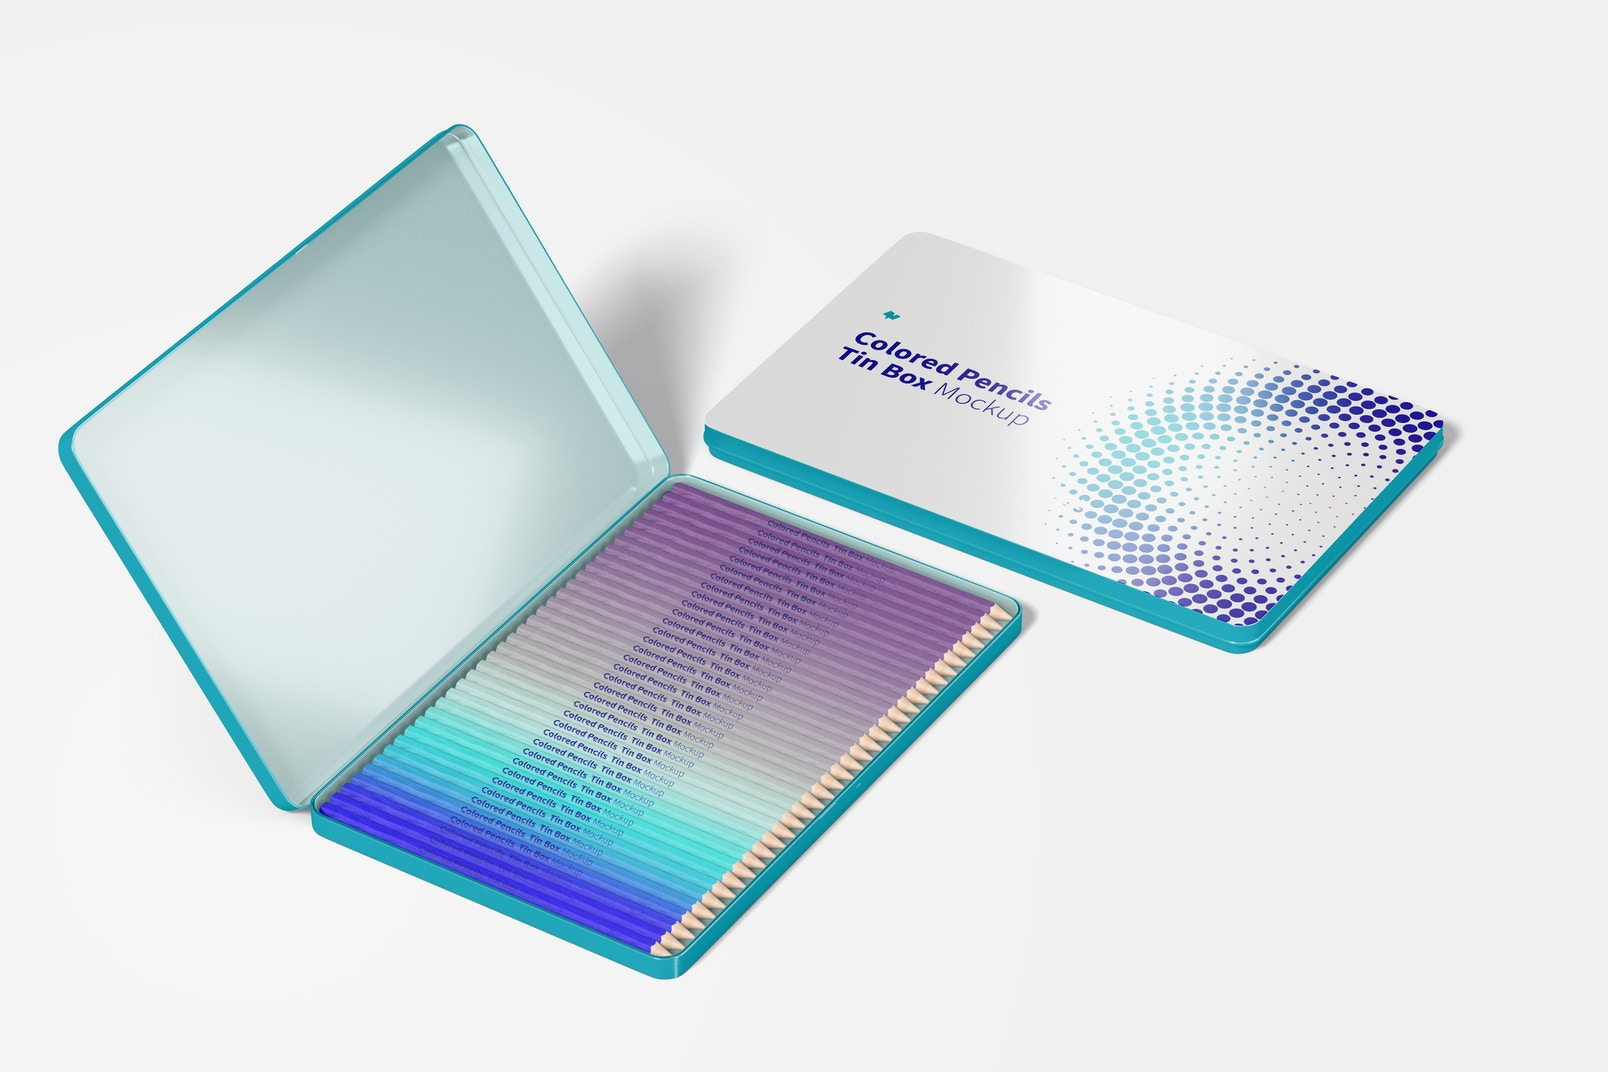 Colored Pencils Tin Boxes Mockup, Perspective View